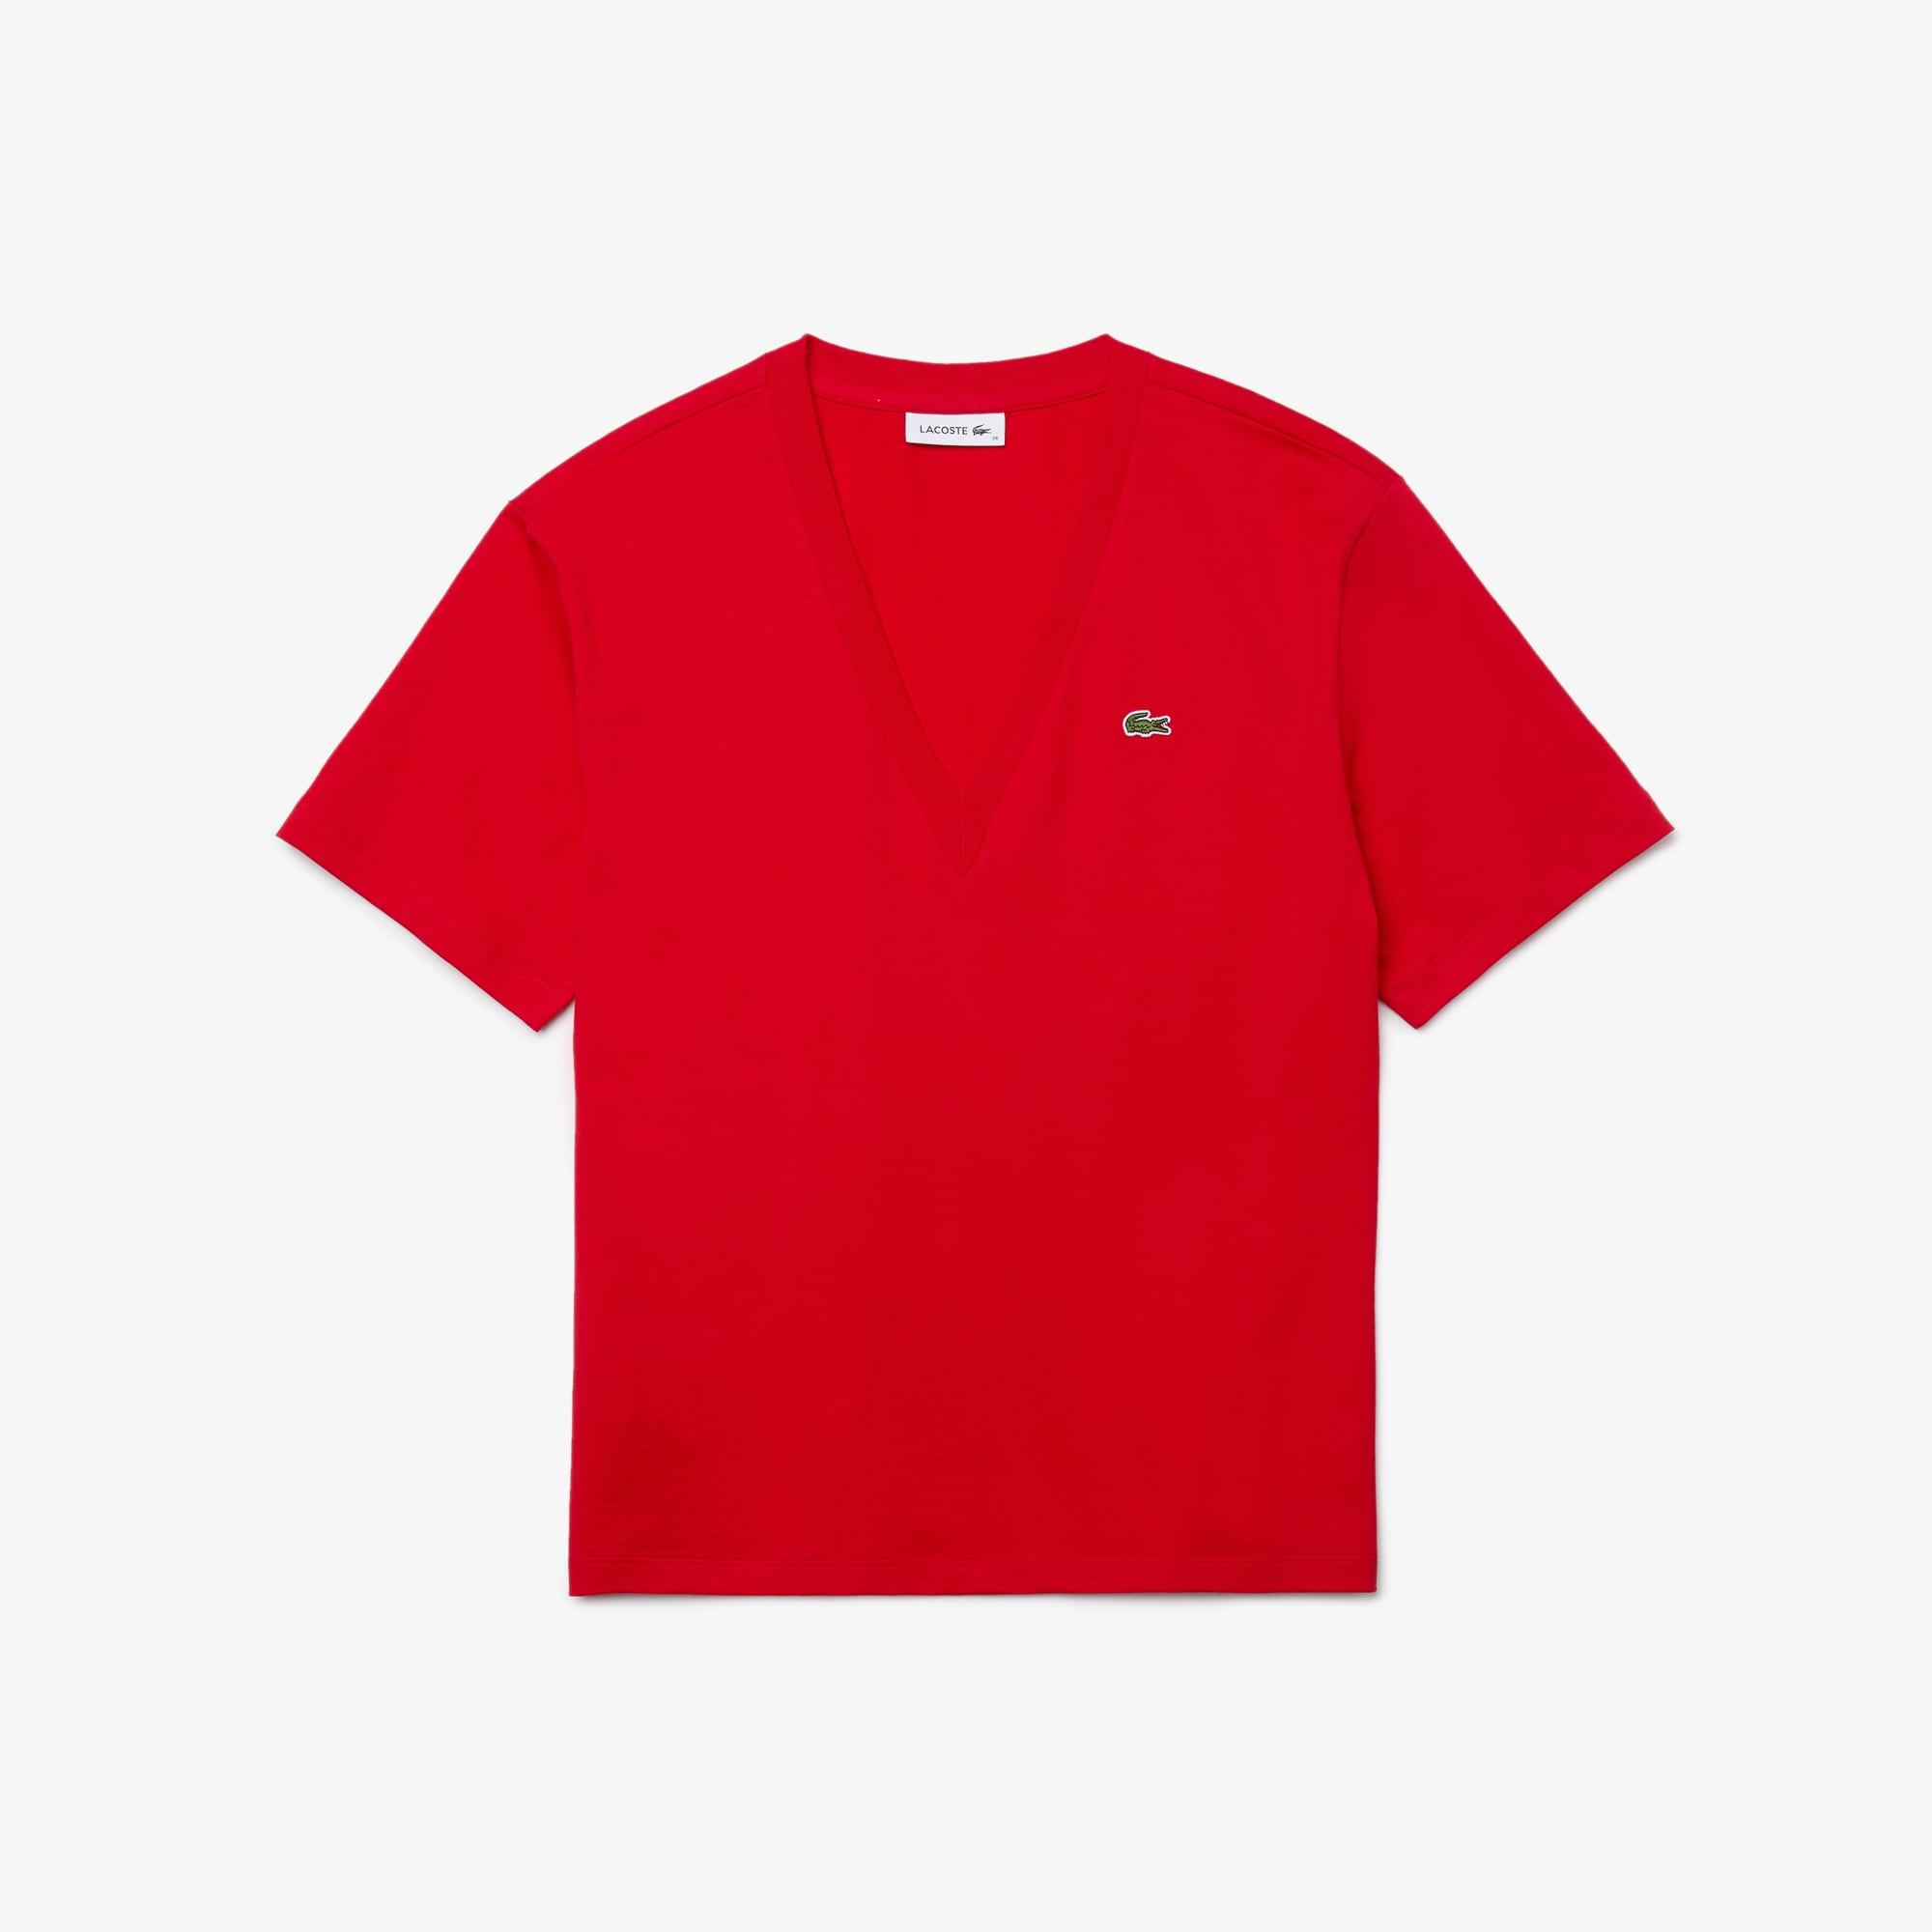 Lacoste WOMEN'S V-NECK PREMIUM COTTON T-SHIRT